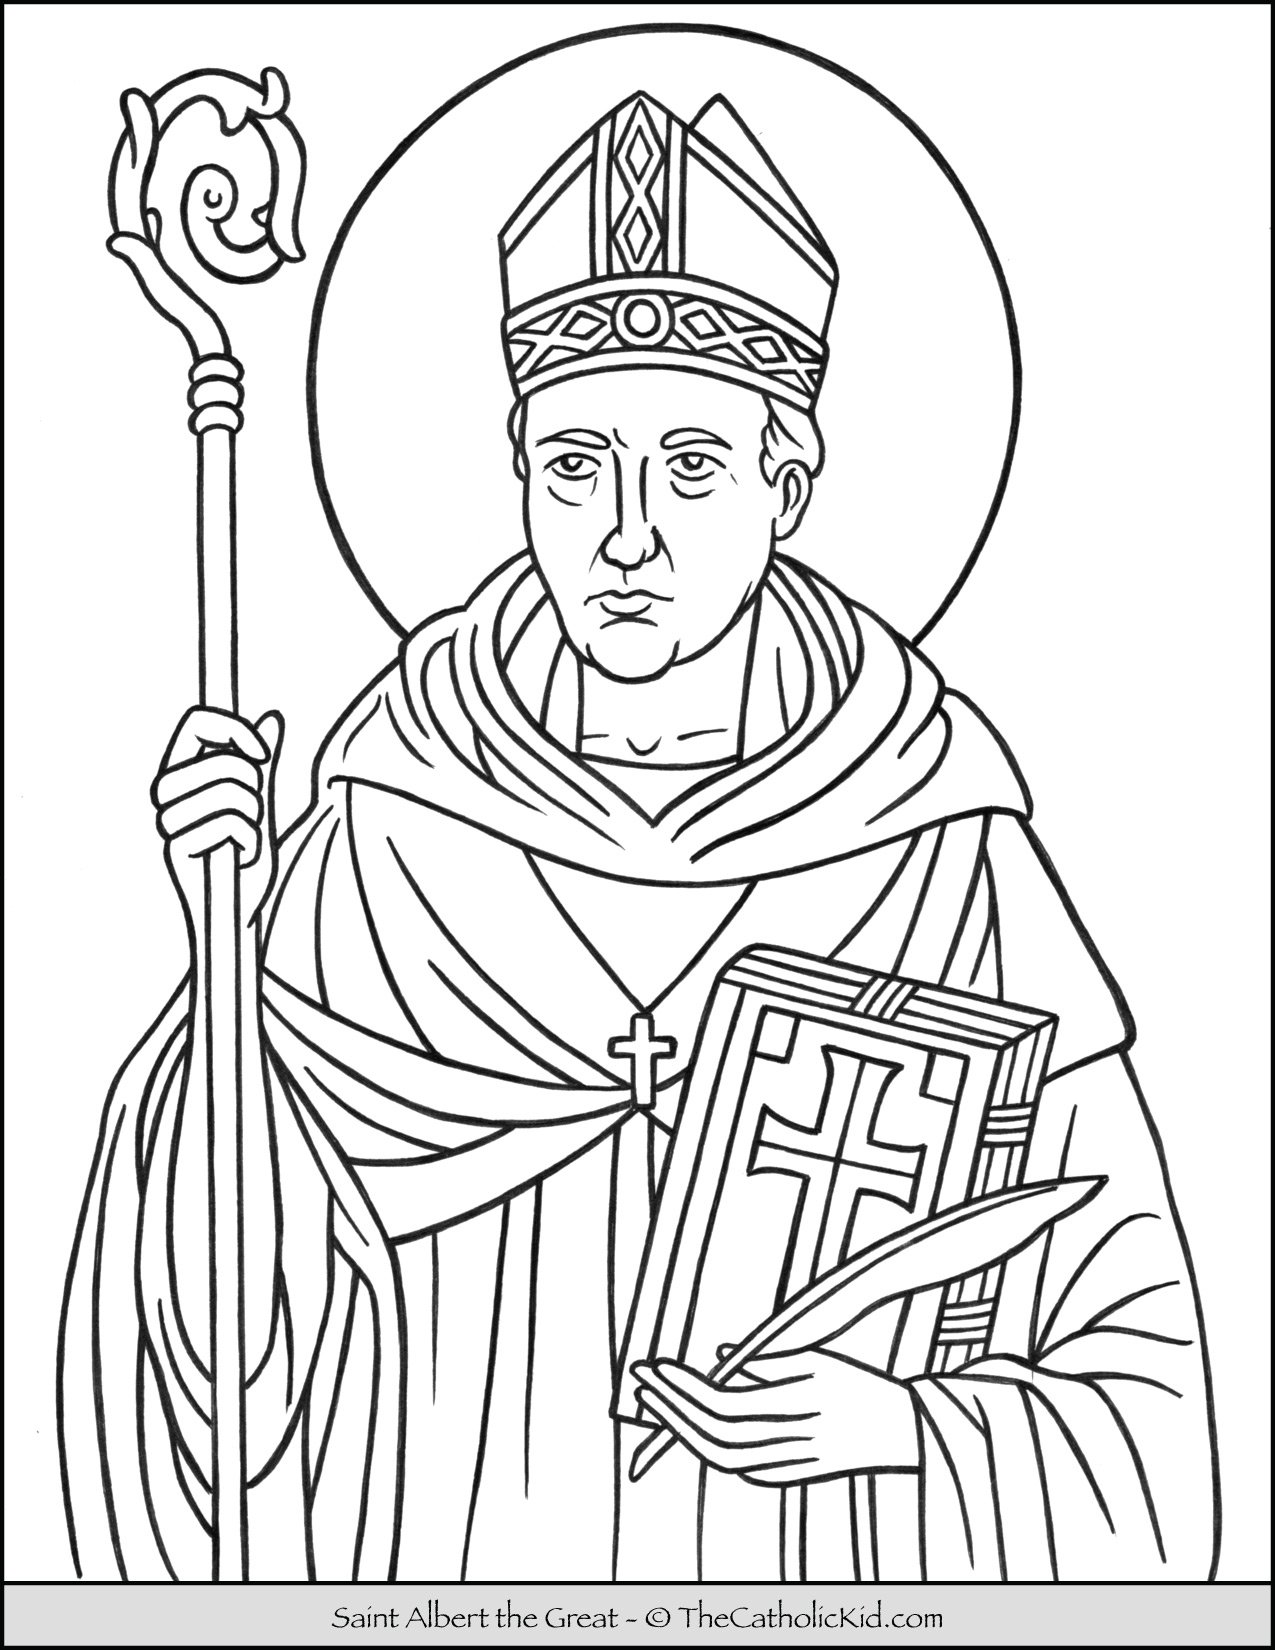 Saint Albert the Great Coloring Page